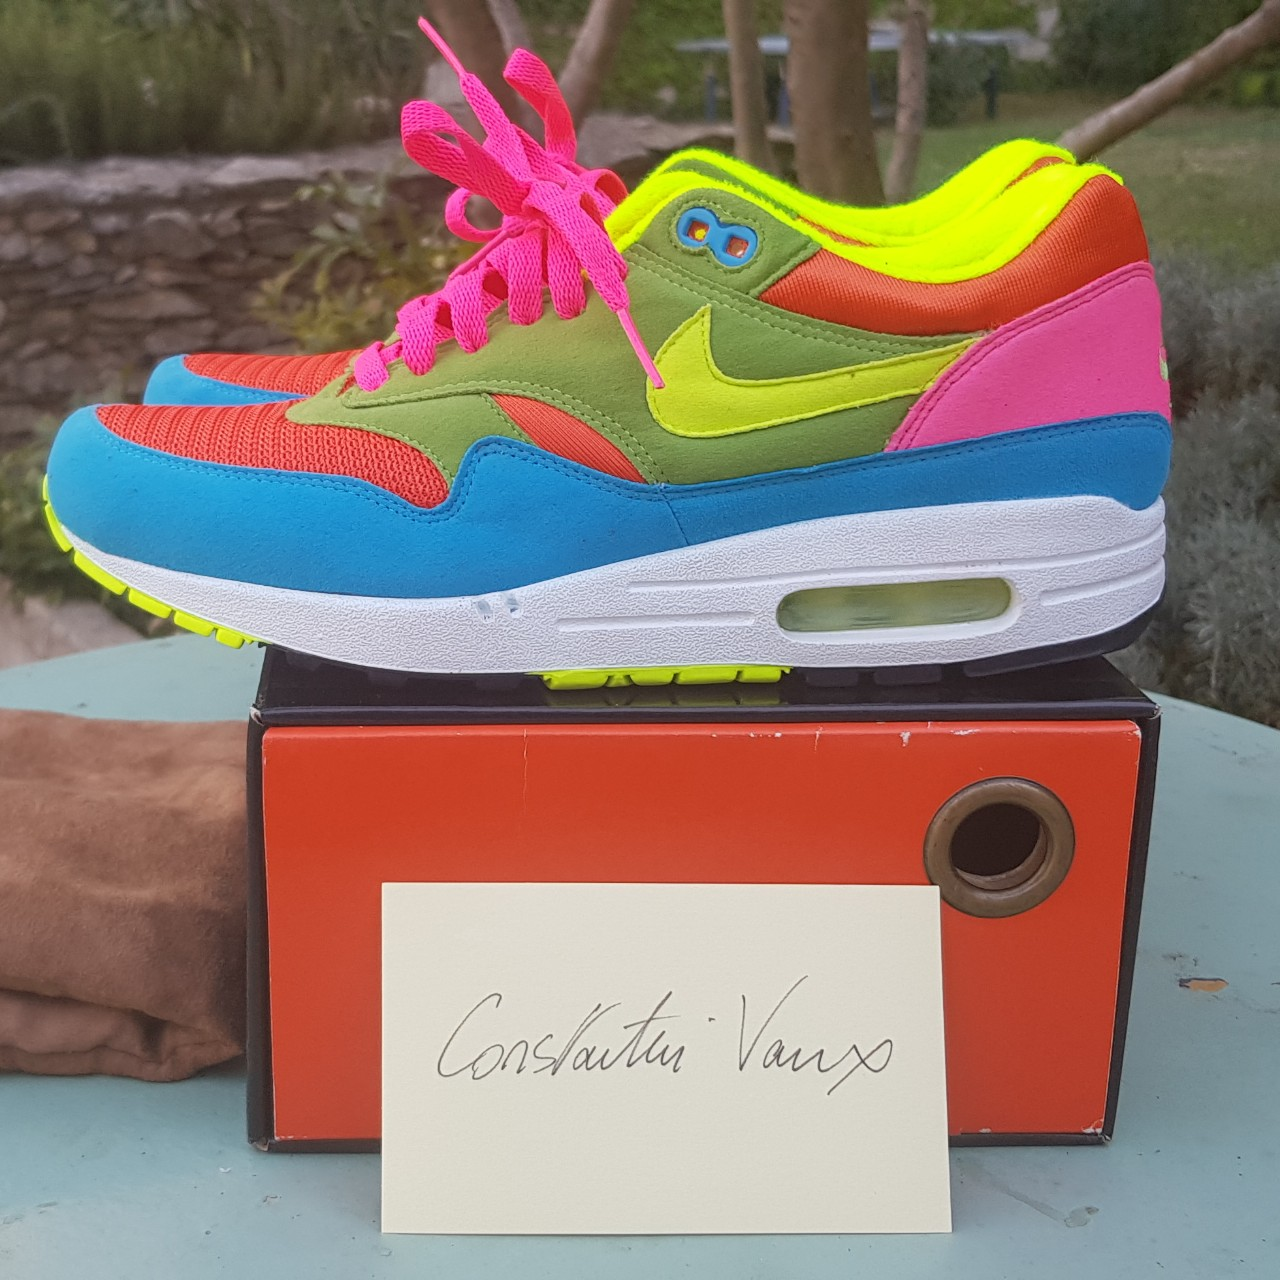 Nike air max 1 id wtf from 2006, 8 us